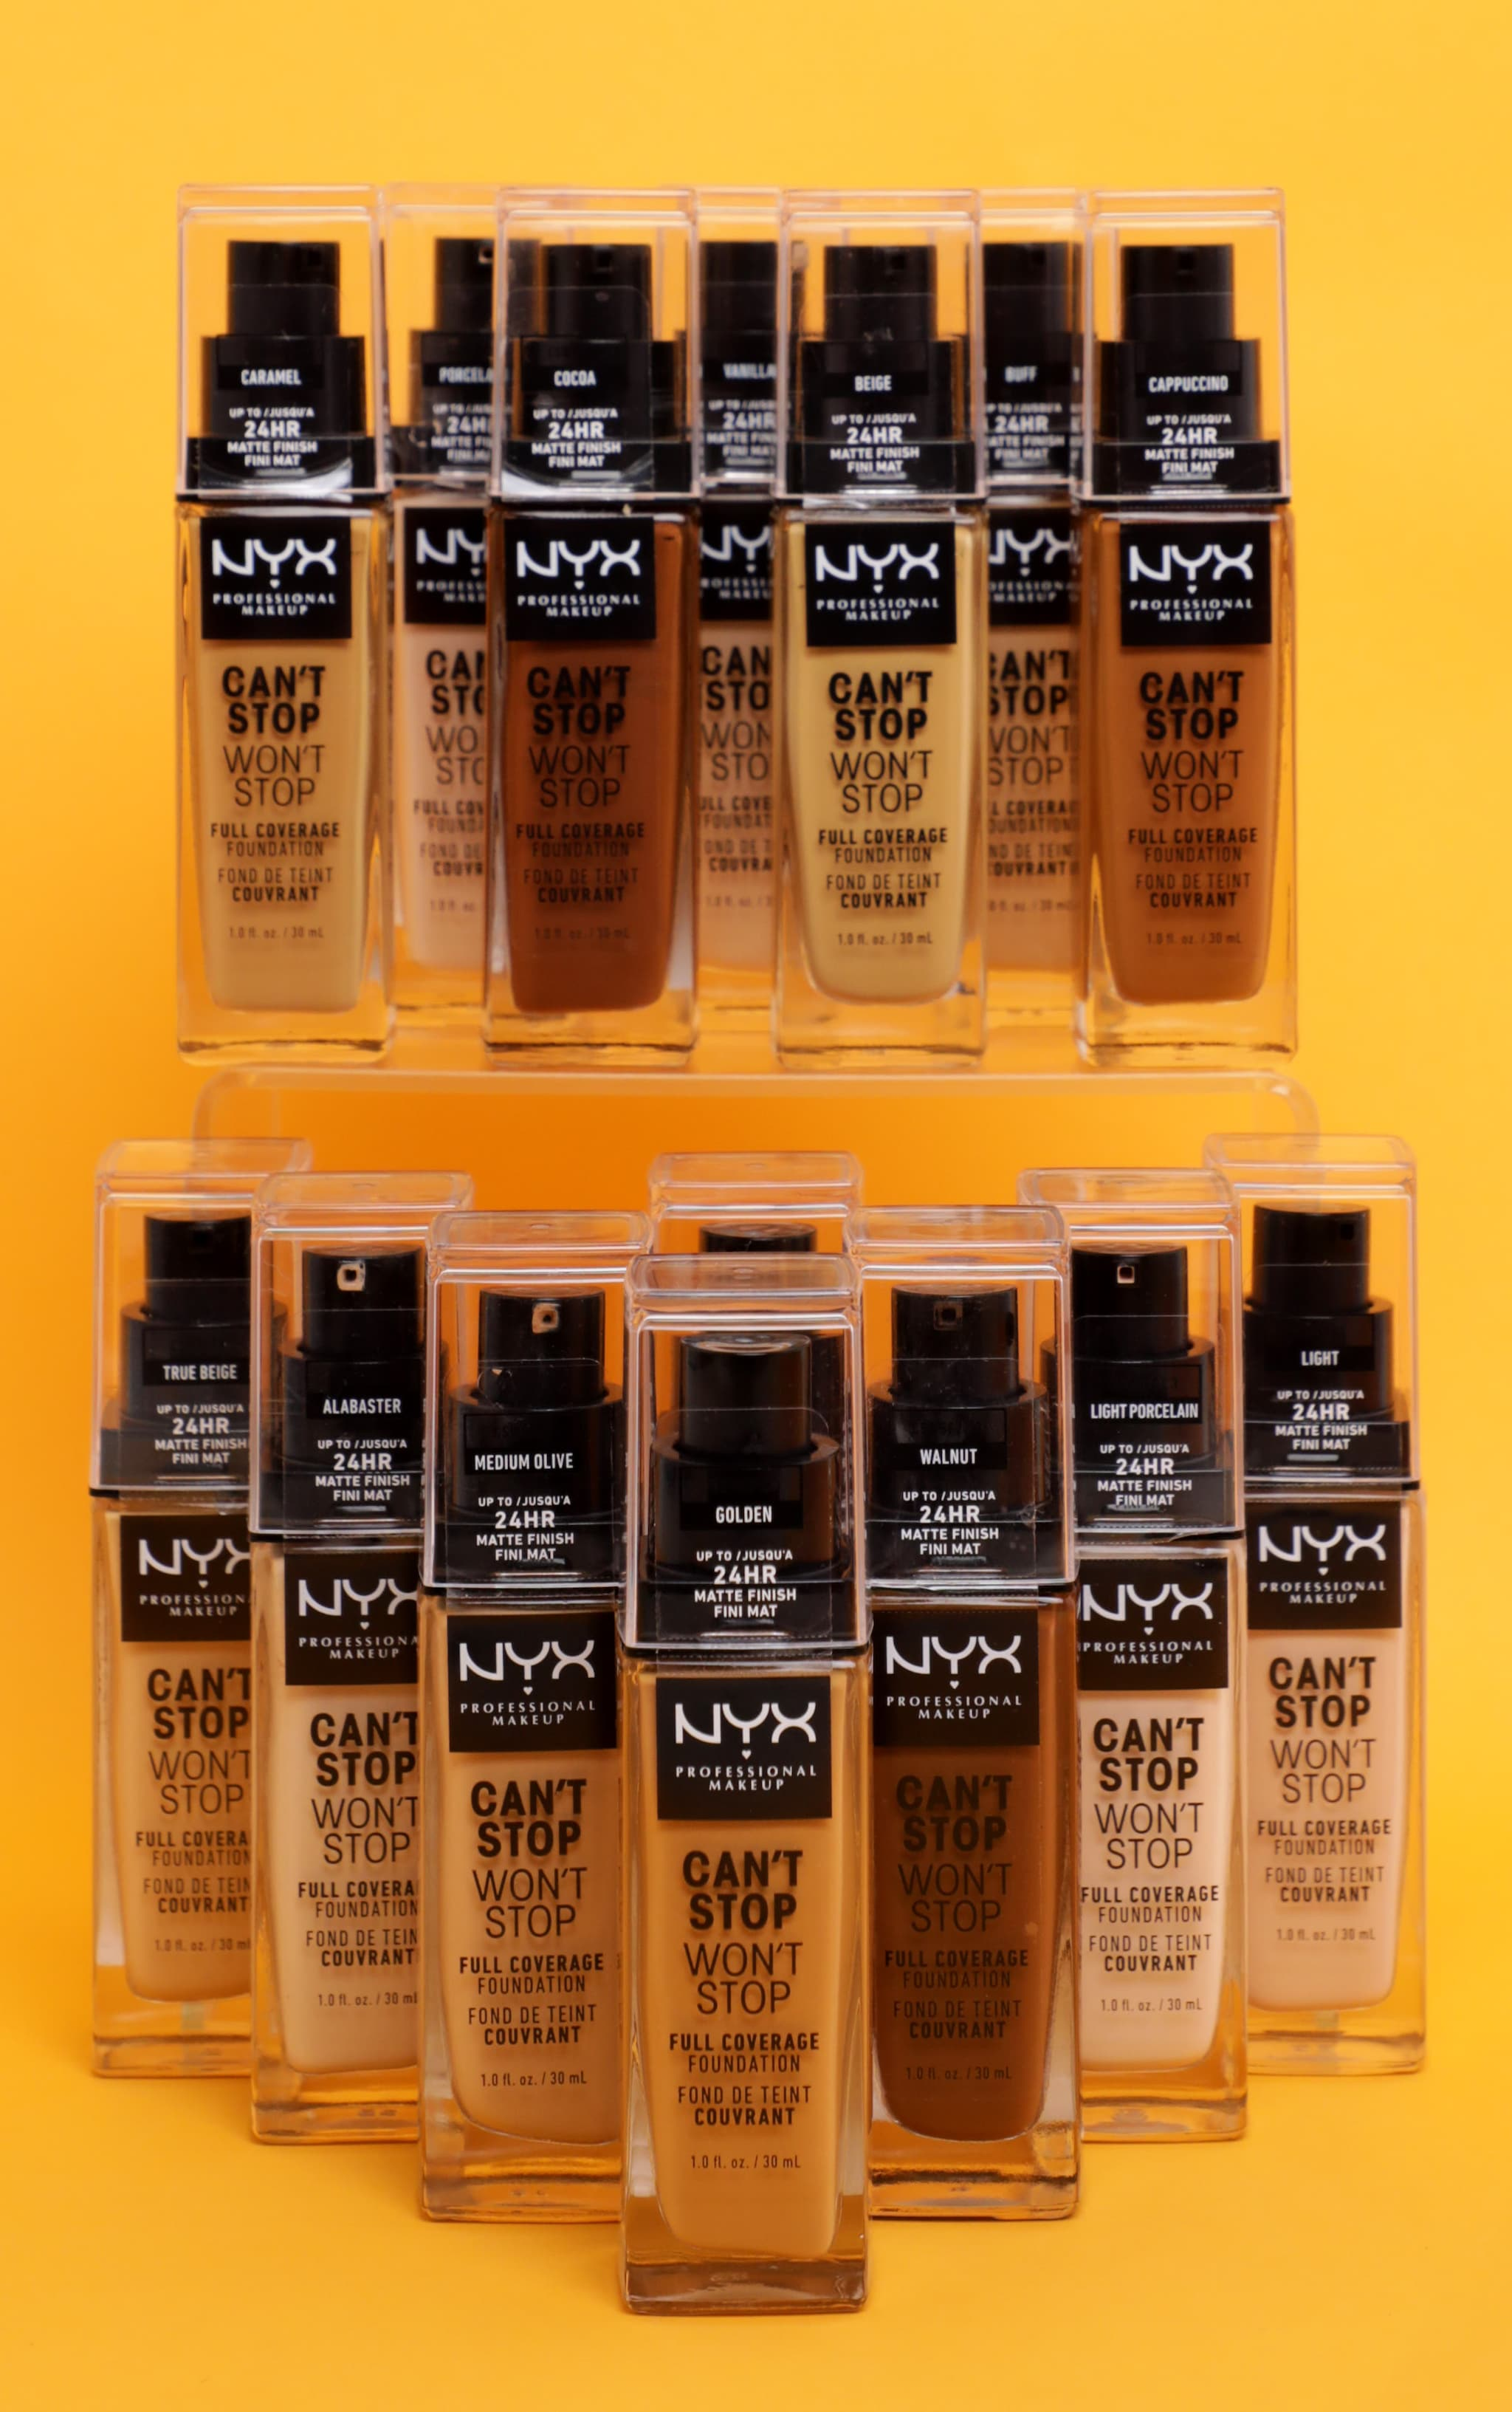 NYX PMU Makeup Can't Stop Won't Stop Full Coverage Foundation True Beige 3